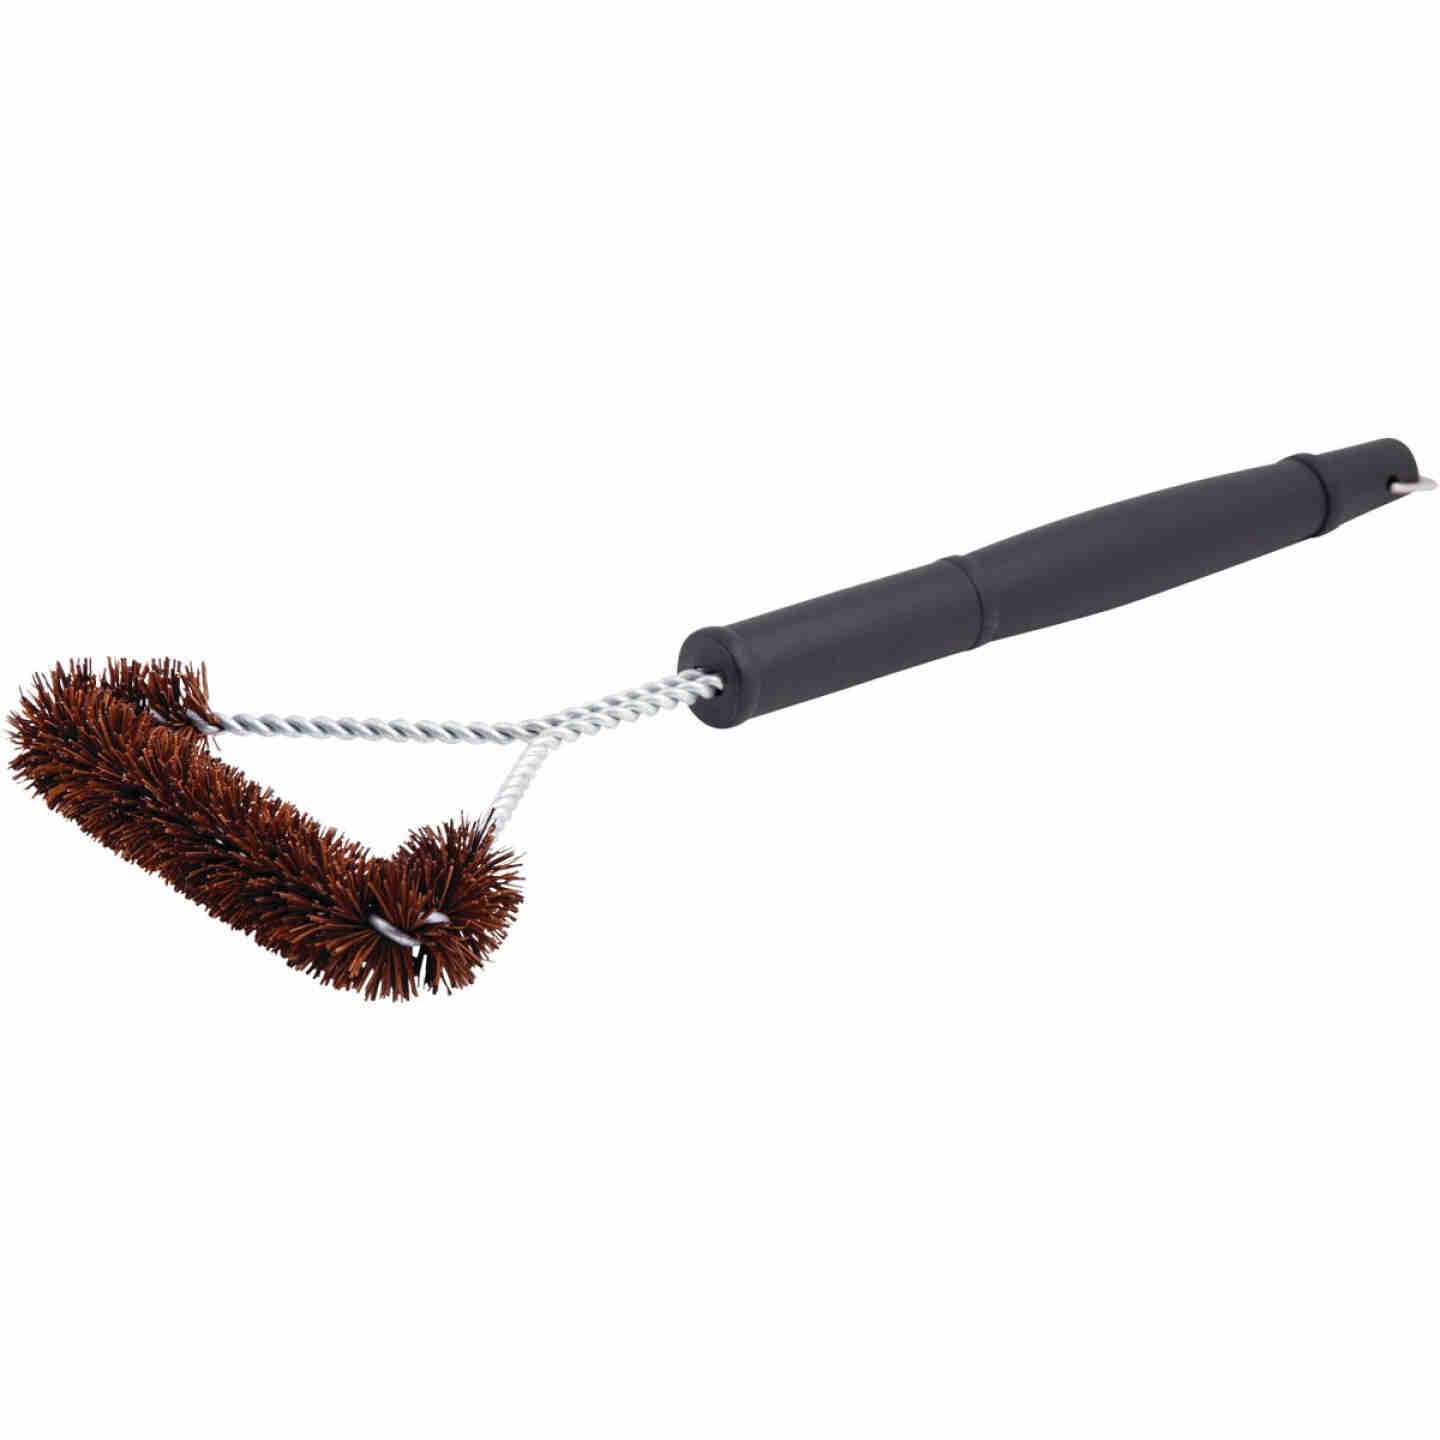 Grillpro 18 In. Extra Wide Palmyra Grill Brush Image 1